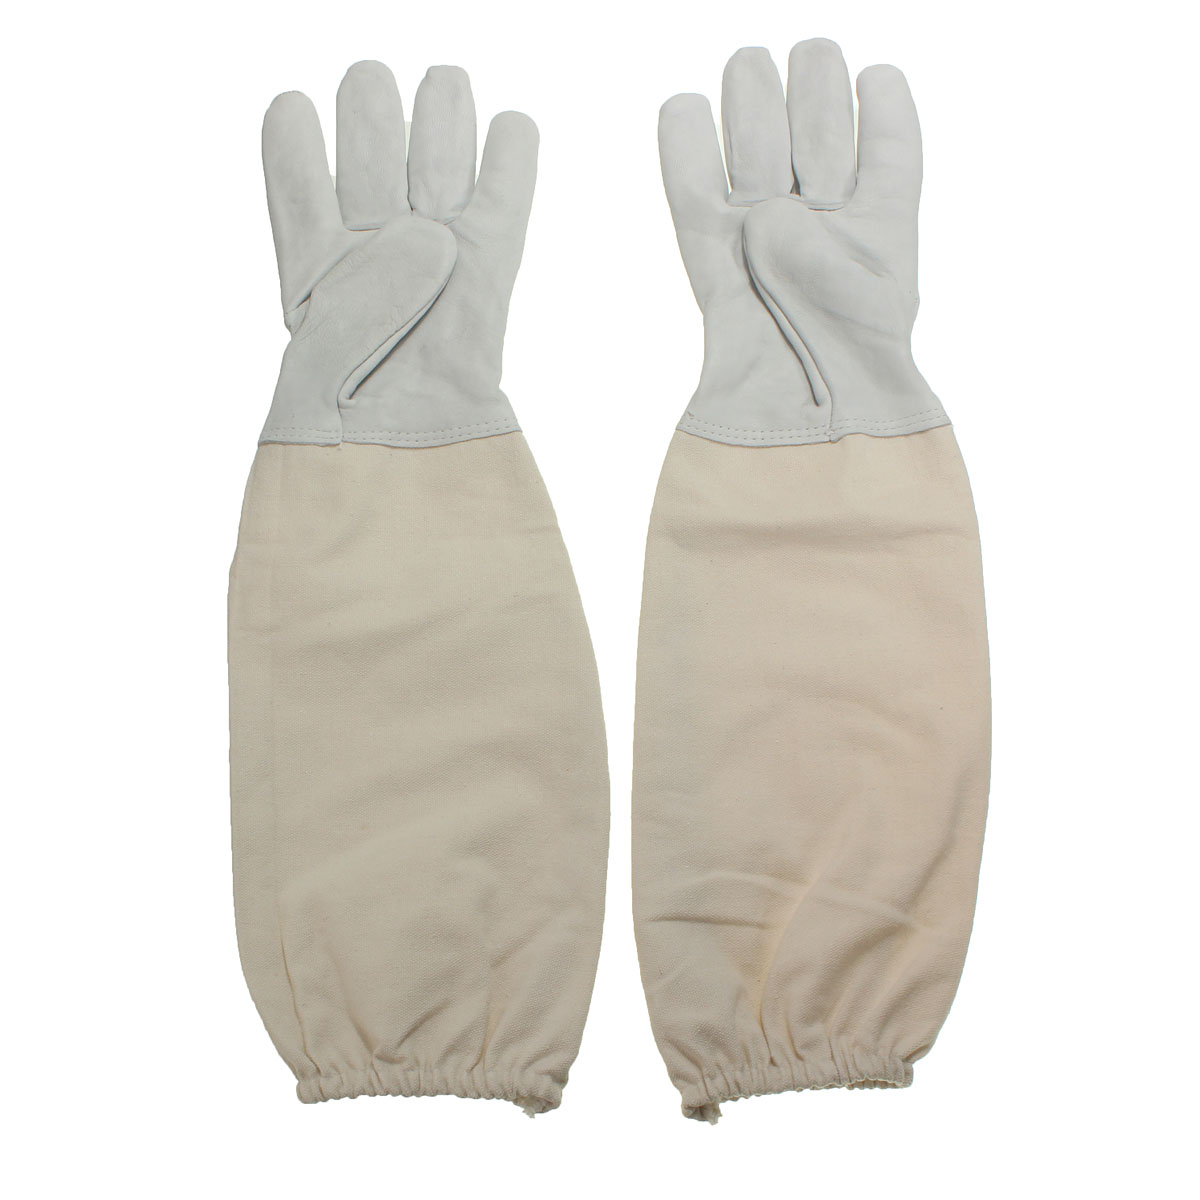 1 Pair Beekeeping Goatskin Cape Gloves XL Sheepskin W/ Vented Long Sleeves Guard New Arrival Free Shipping комплектующие для кормушек beekeeping 4 equipment121mm 91 158